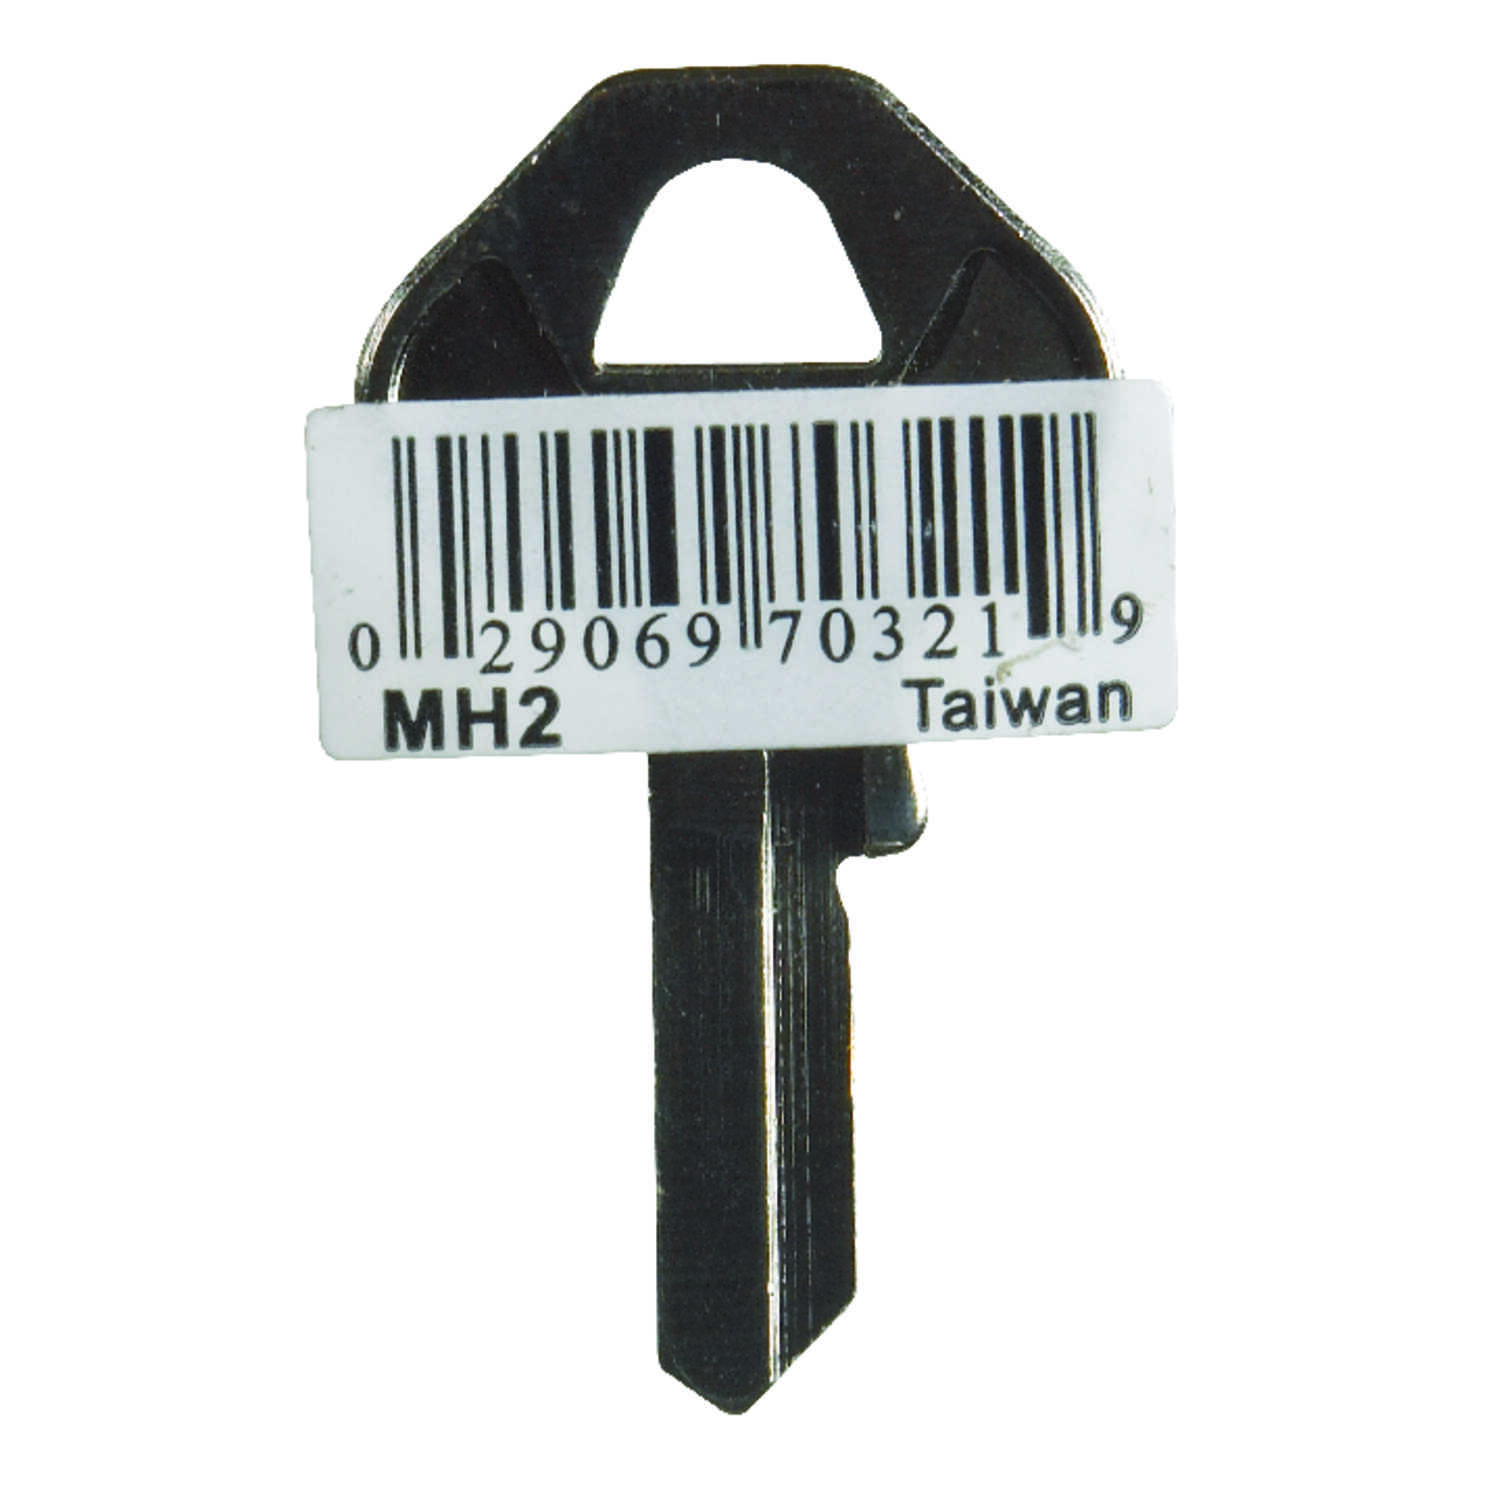 Hy-Ko  Automotive  Key Blank  EZ# MH2  Single sided For Fits Master Padlocks